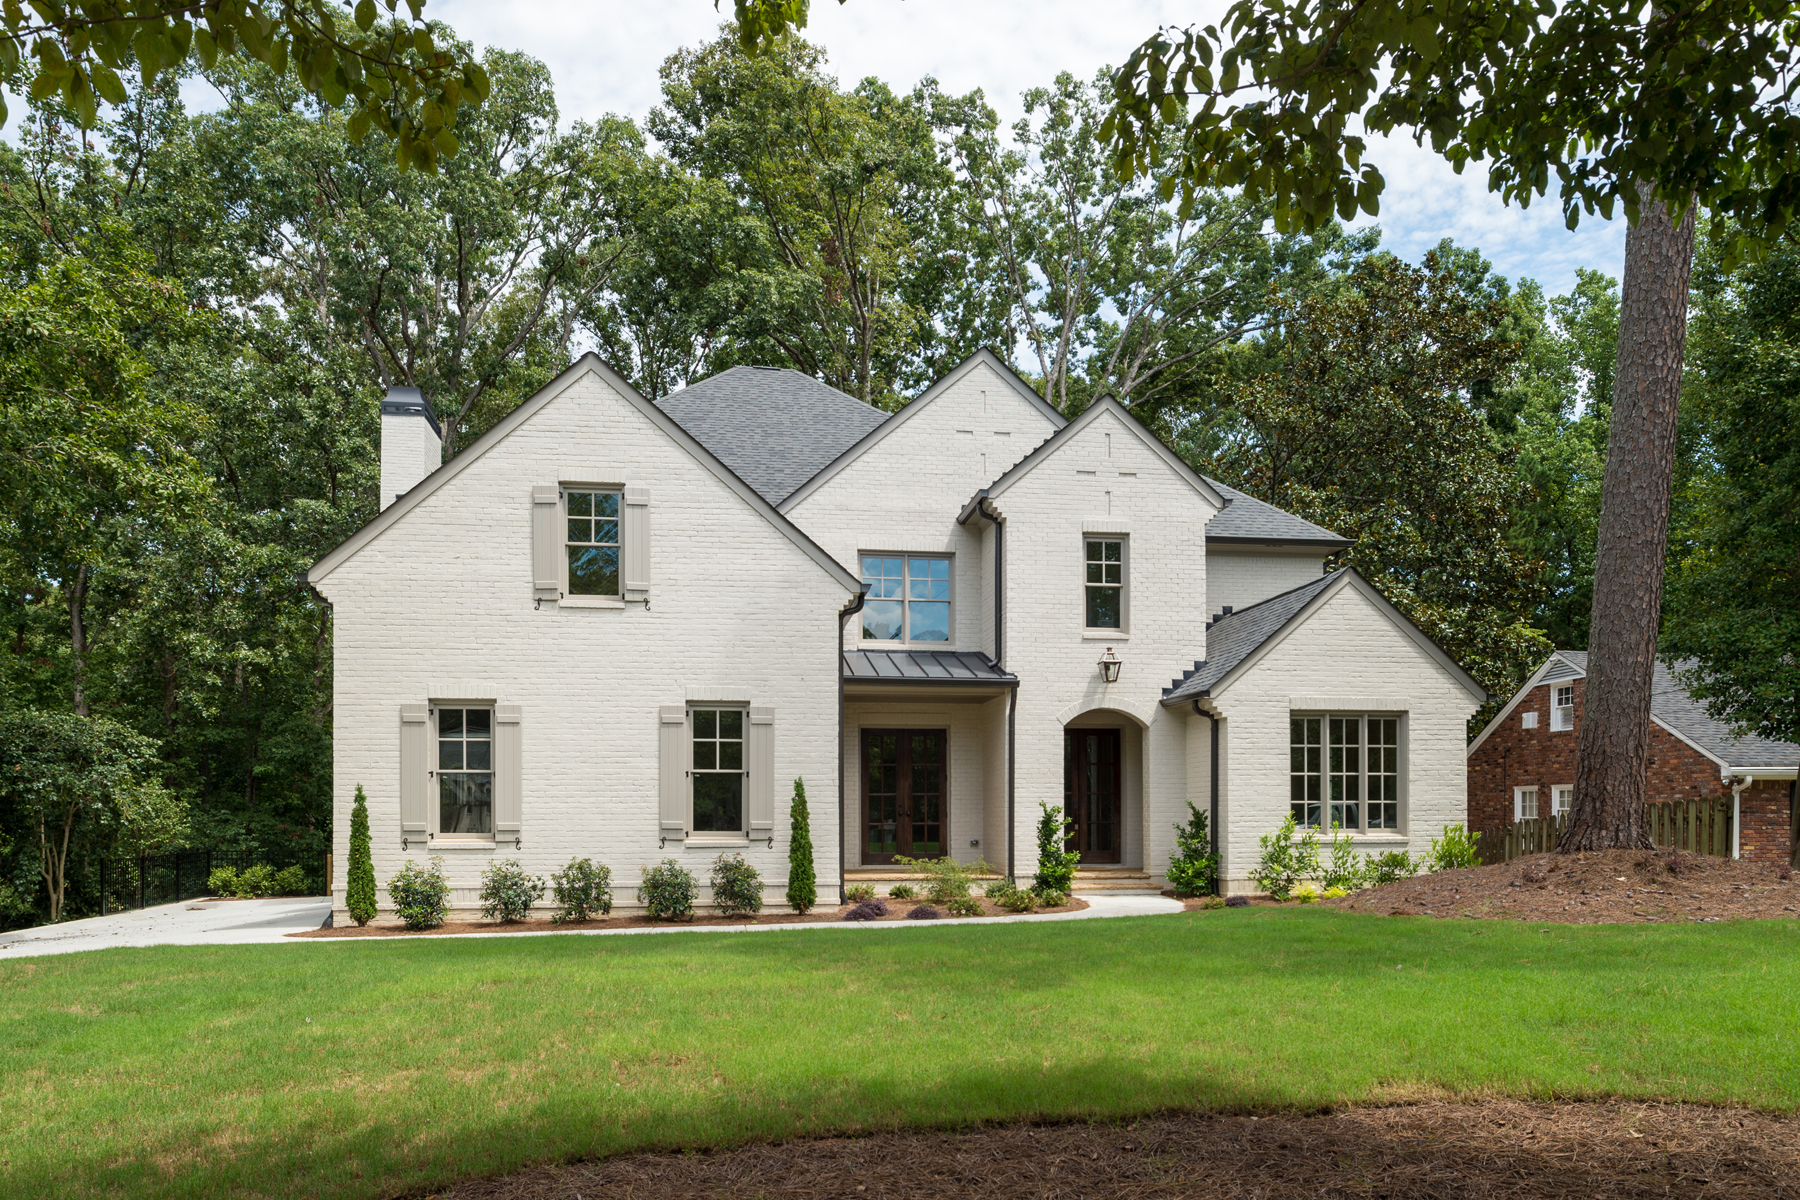 Moradia para Venda às Brand New With Three Car Garage In The Heart Of CastlewoodBuckhead 3059 Rhodenhaven Drive Castlewood, Atlanta, Geórgia, 30327 Estados Unidos